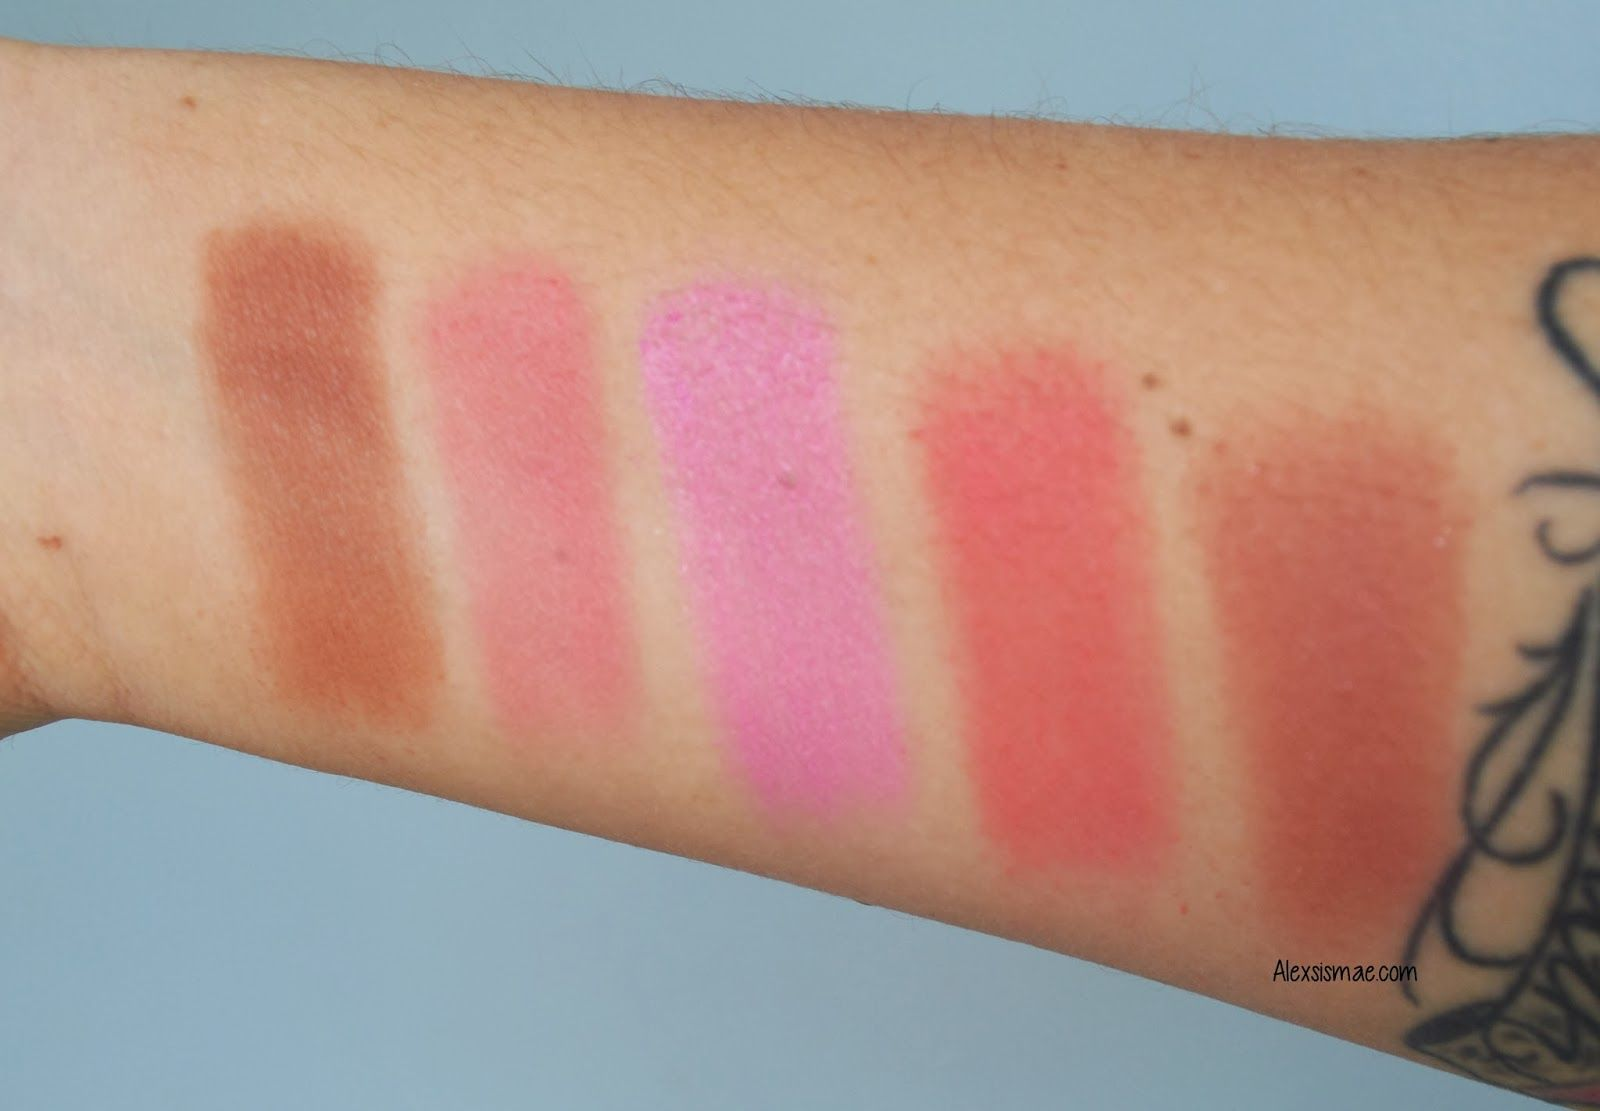 BH Cosmetics 10 Blush Palette Review + Swatches